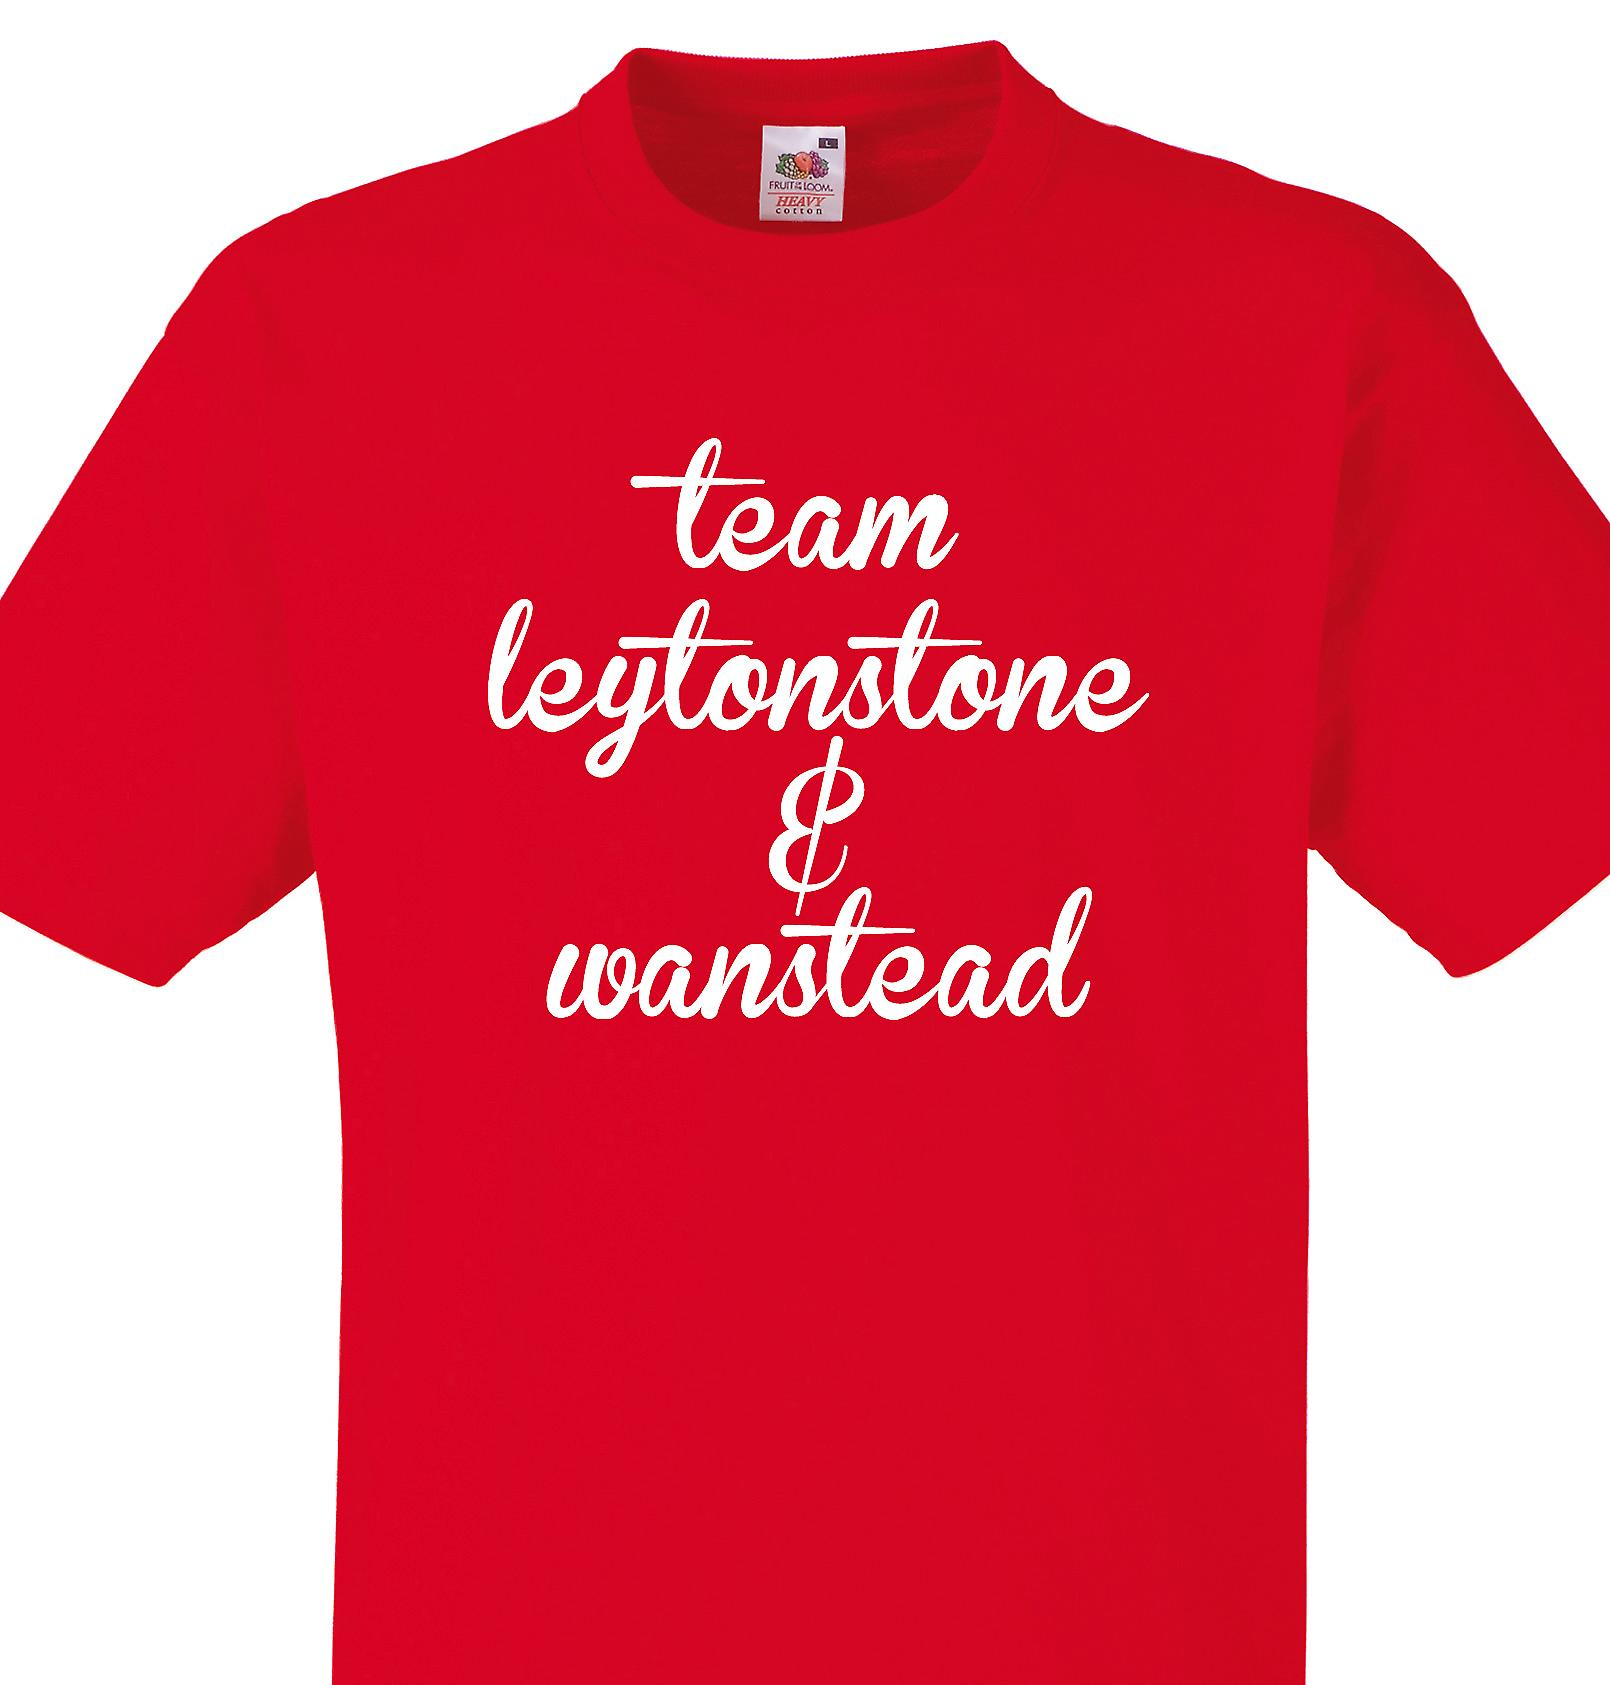 Team Leytonstone & wanstead Red T shirt